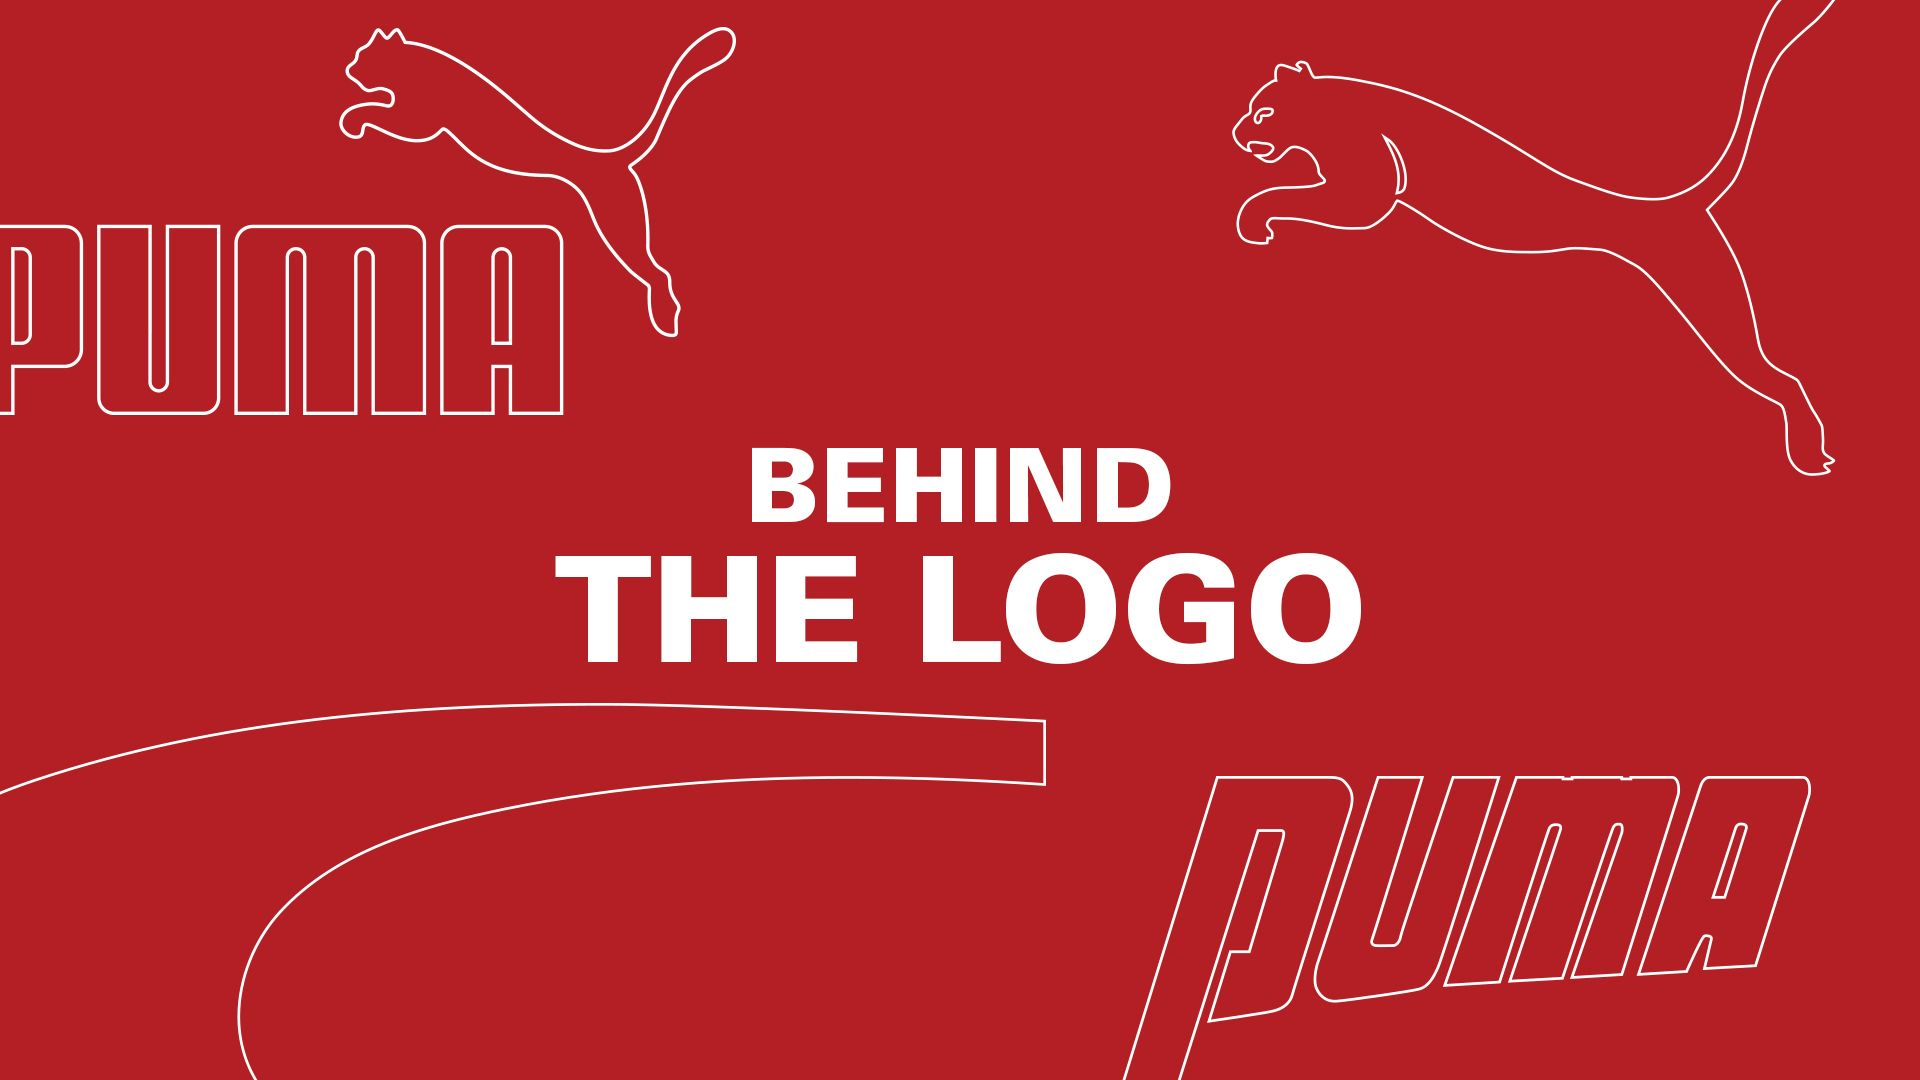 Puma Logo - Everything You Need to Know About PUMA's Iconic Cat Logo